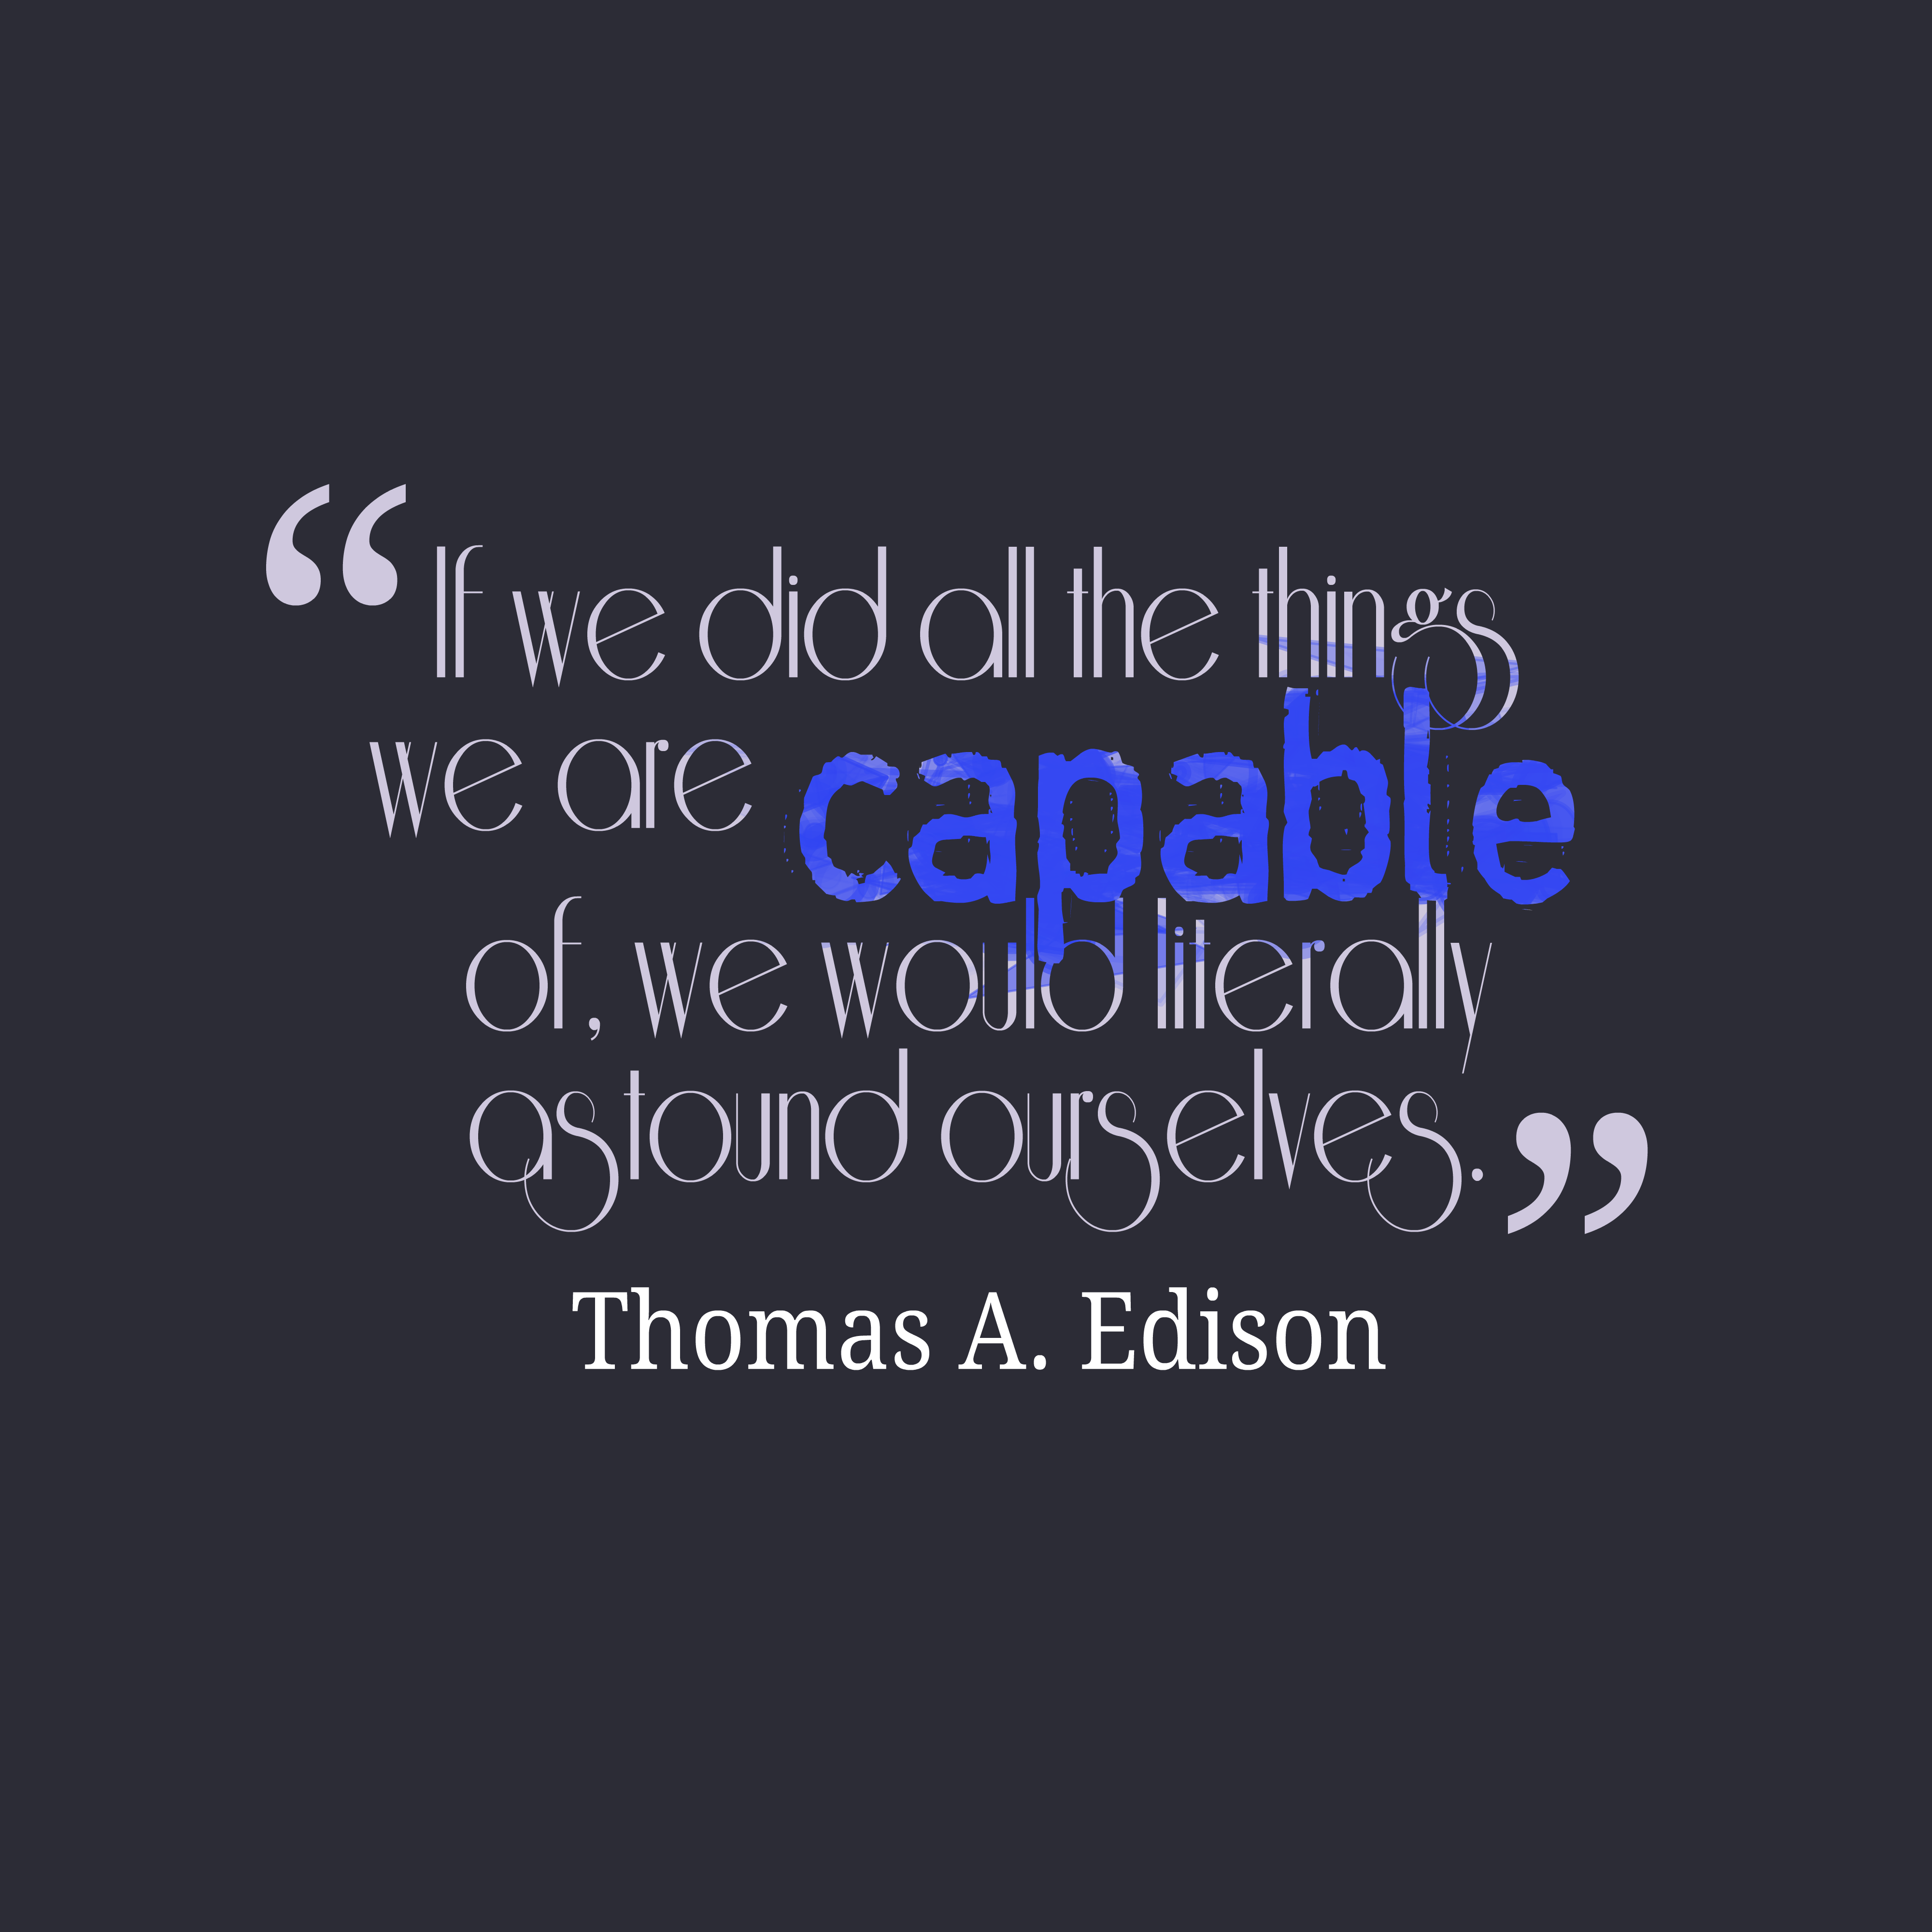 Thomas Edison Quotes | Picture Thomas A Edison Quote About Ourselves